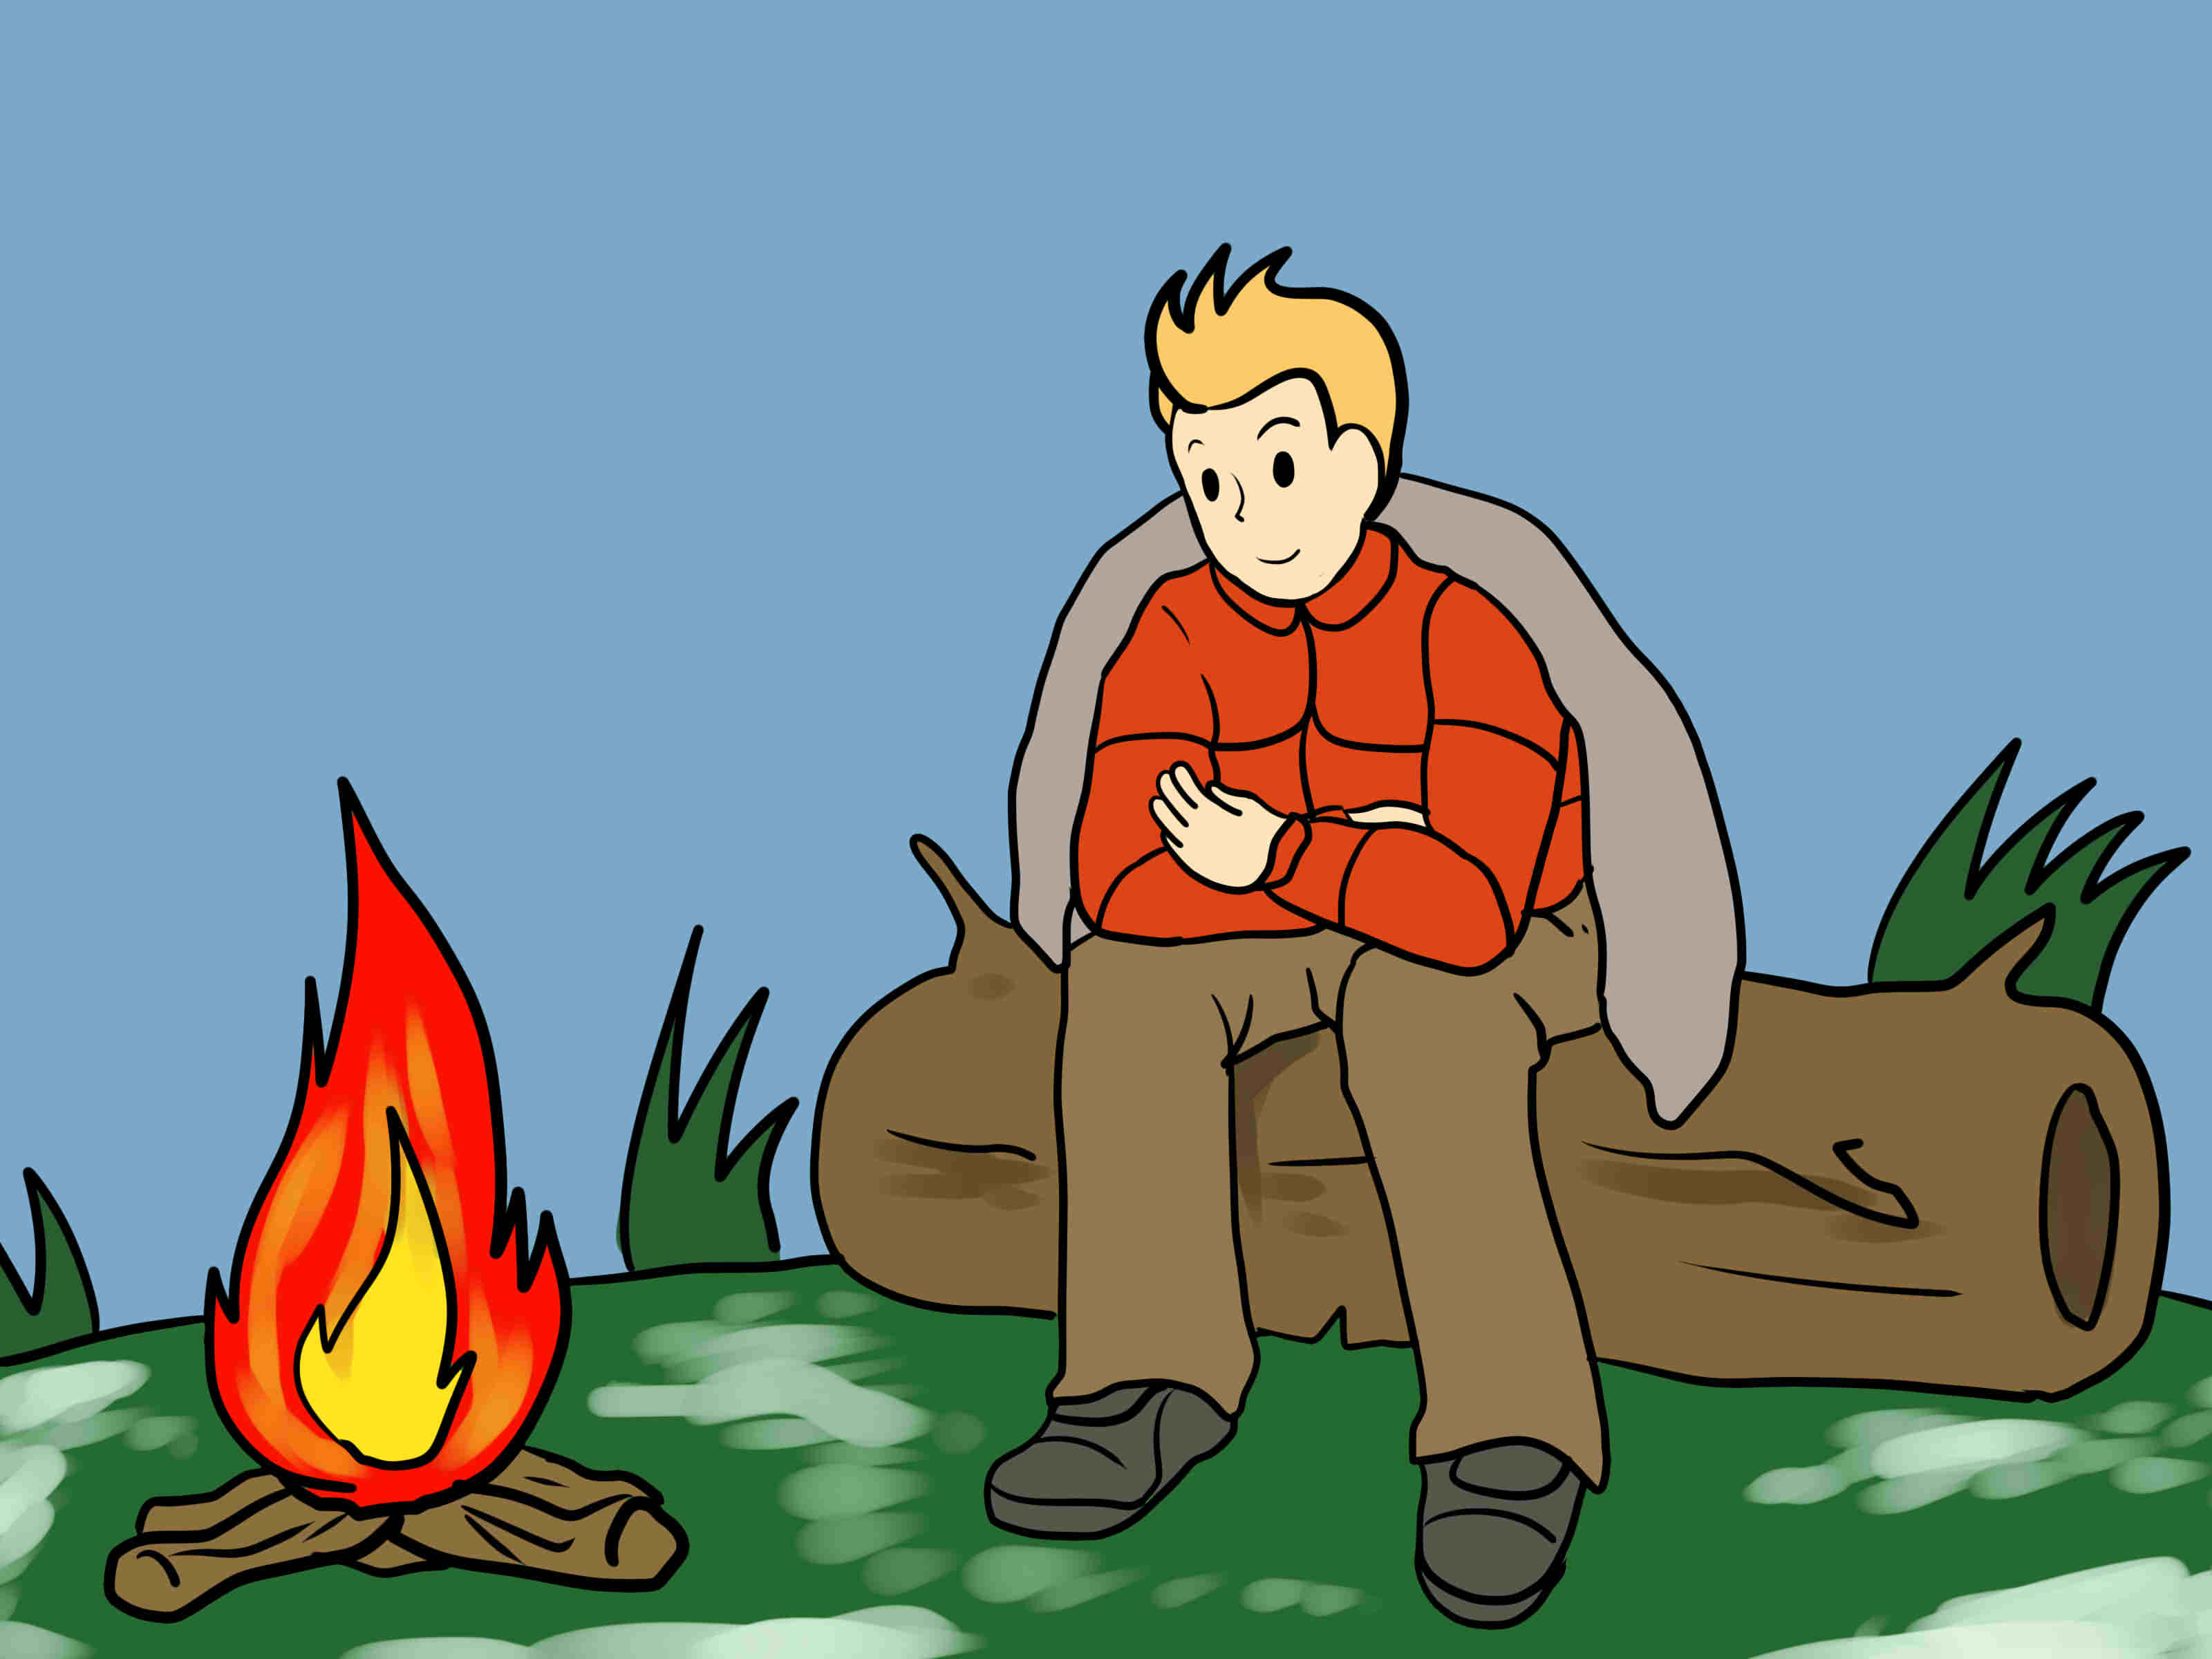 Survival clipart #15, Download drawings